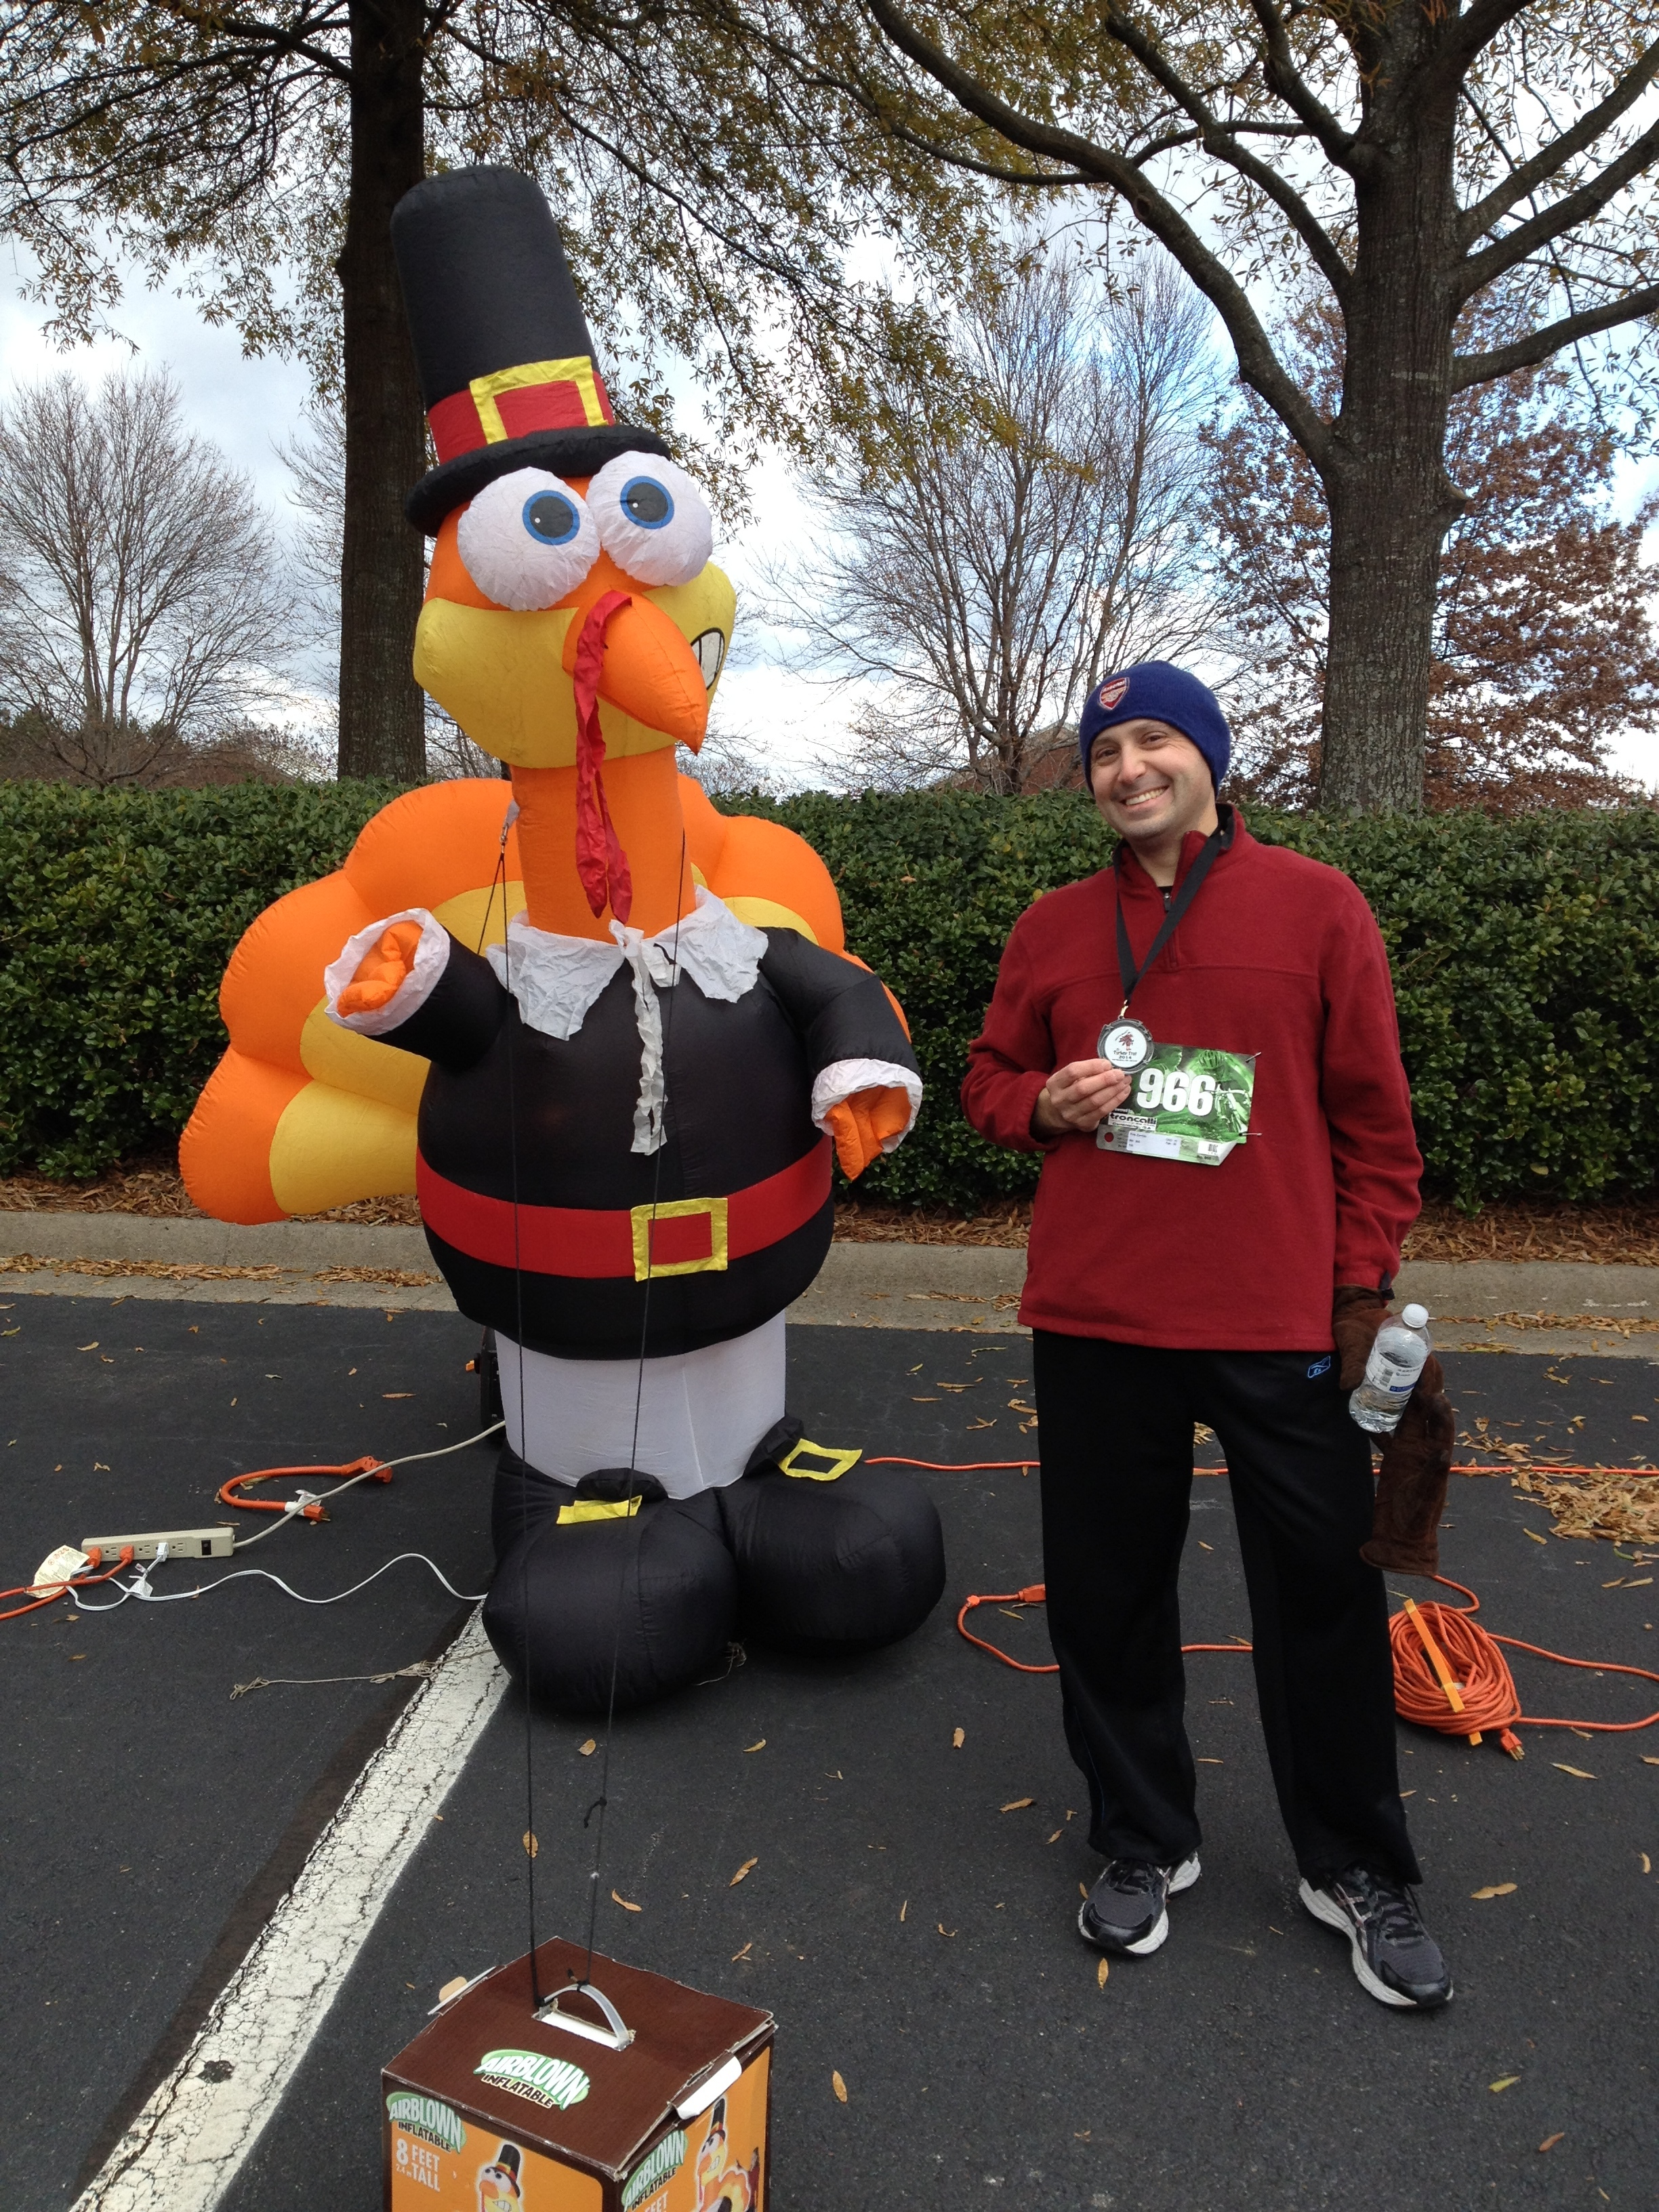 Turkey Troy and Me! (I'm the one wearing the medal.)